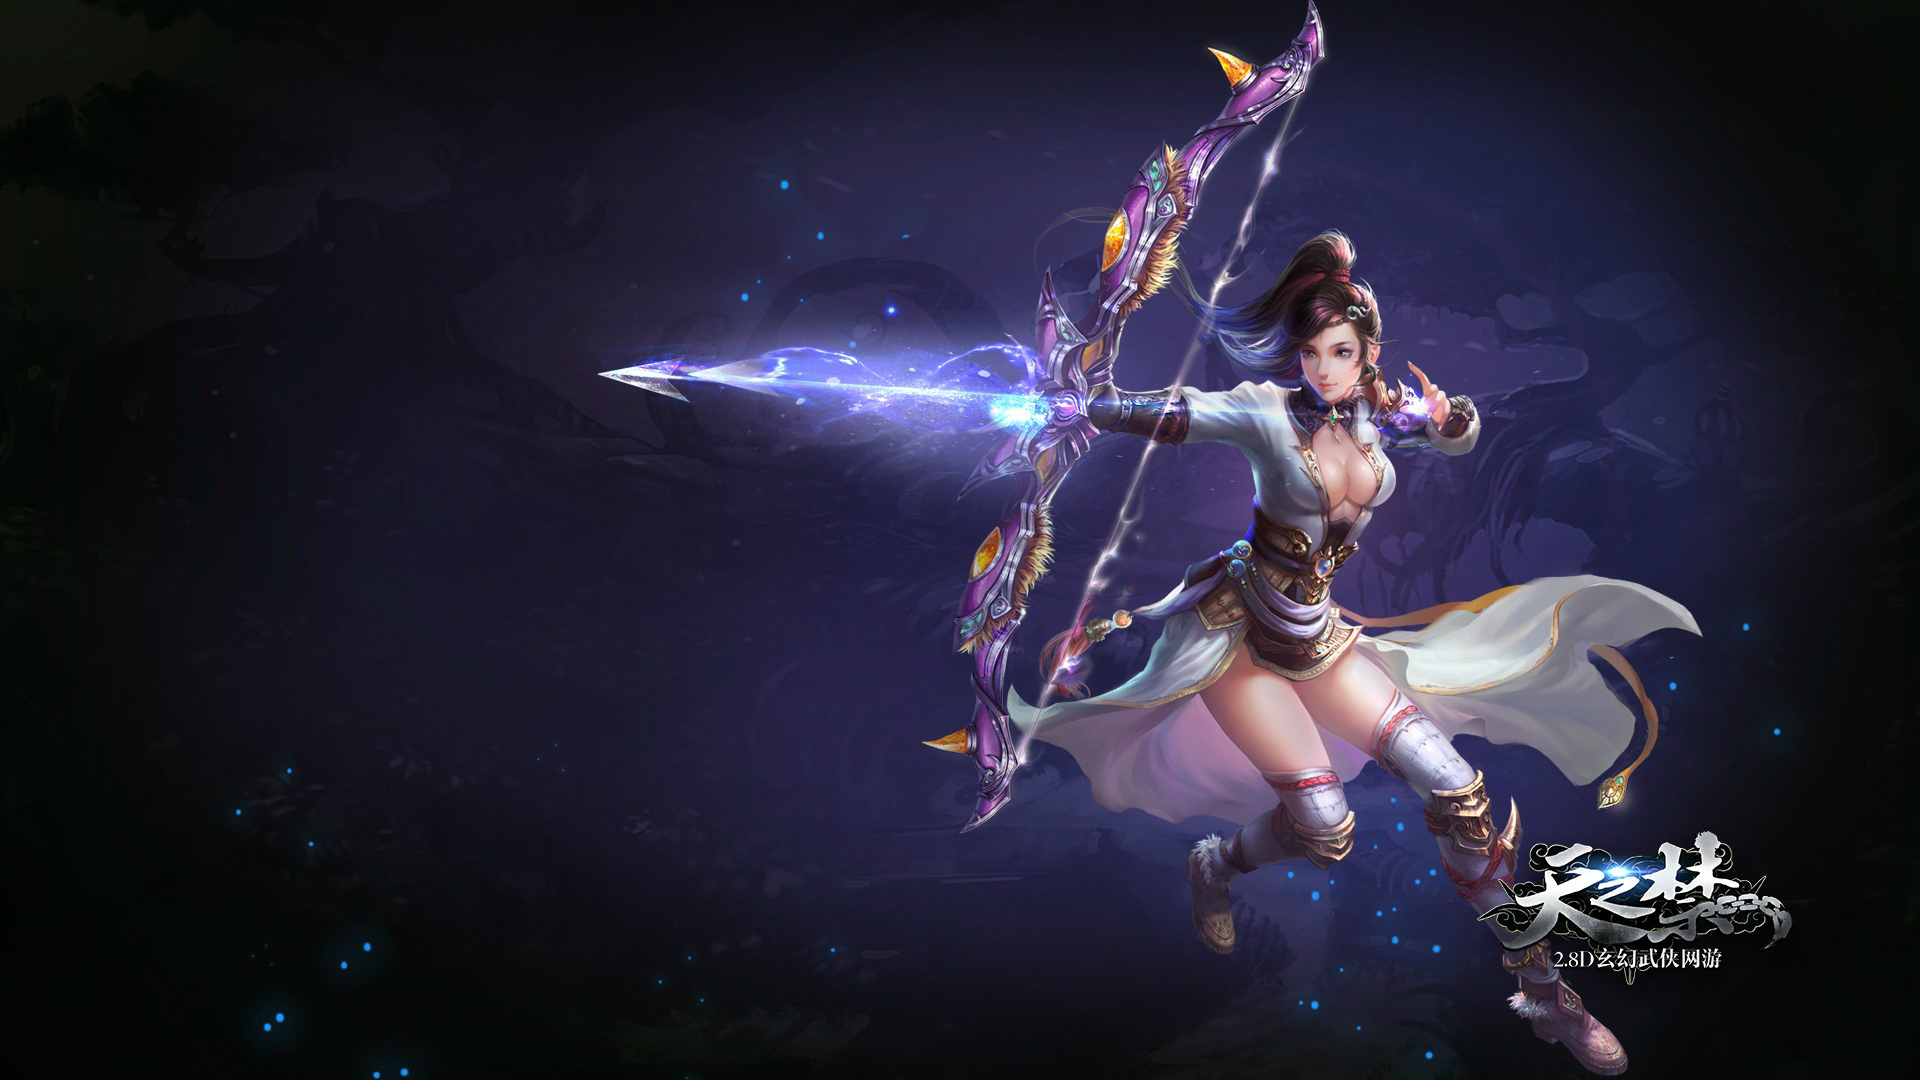 Beautiful Hd 3d Flowers Wallpapers Days Of The Ban Archer Video Game Fantasy Art Hd Wallpaper